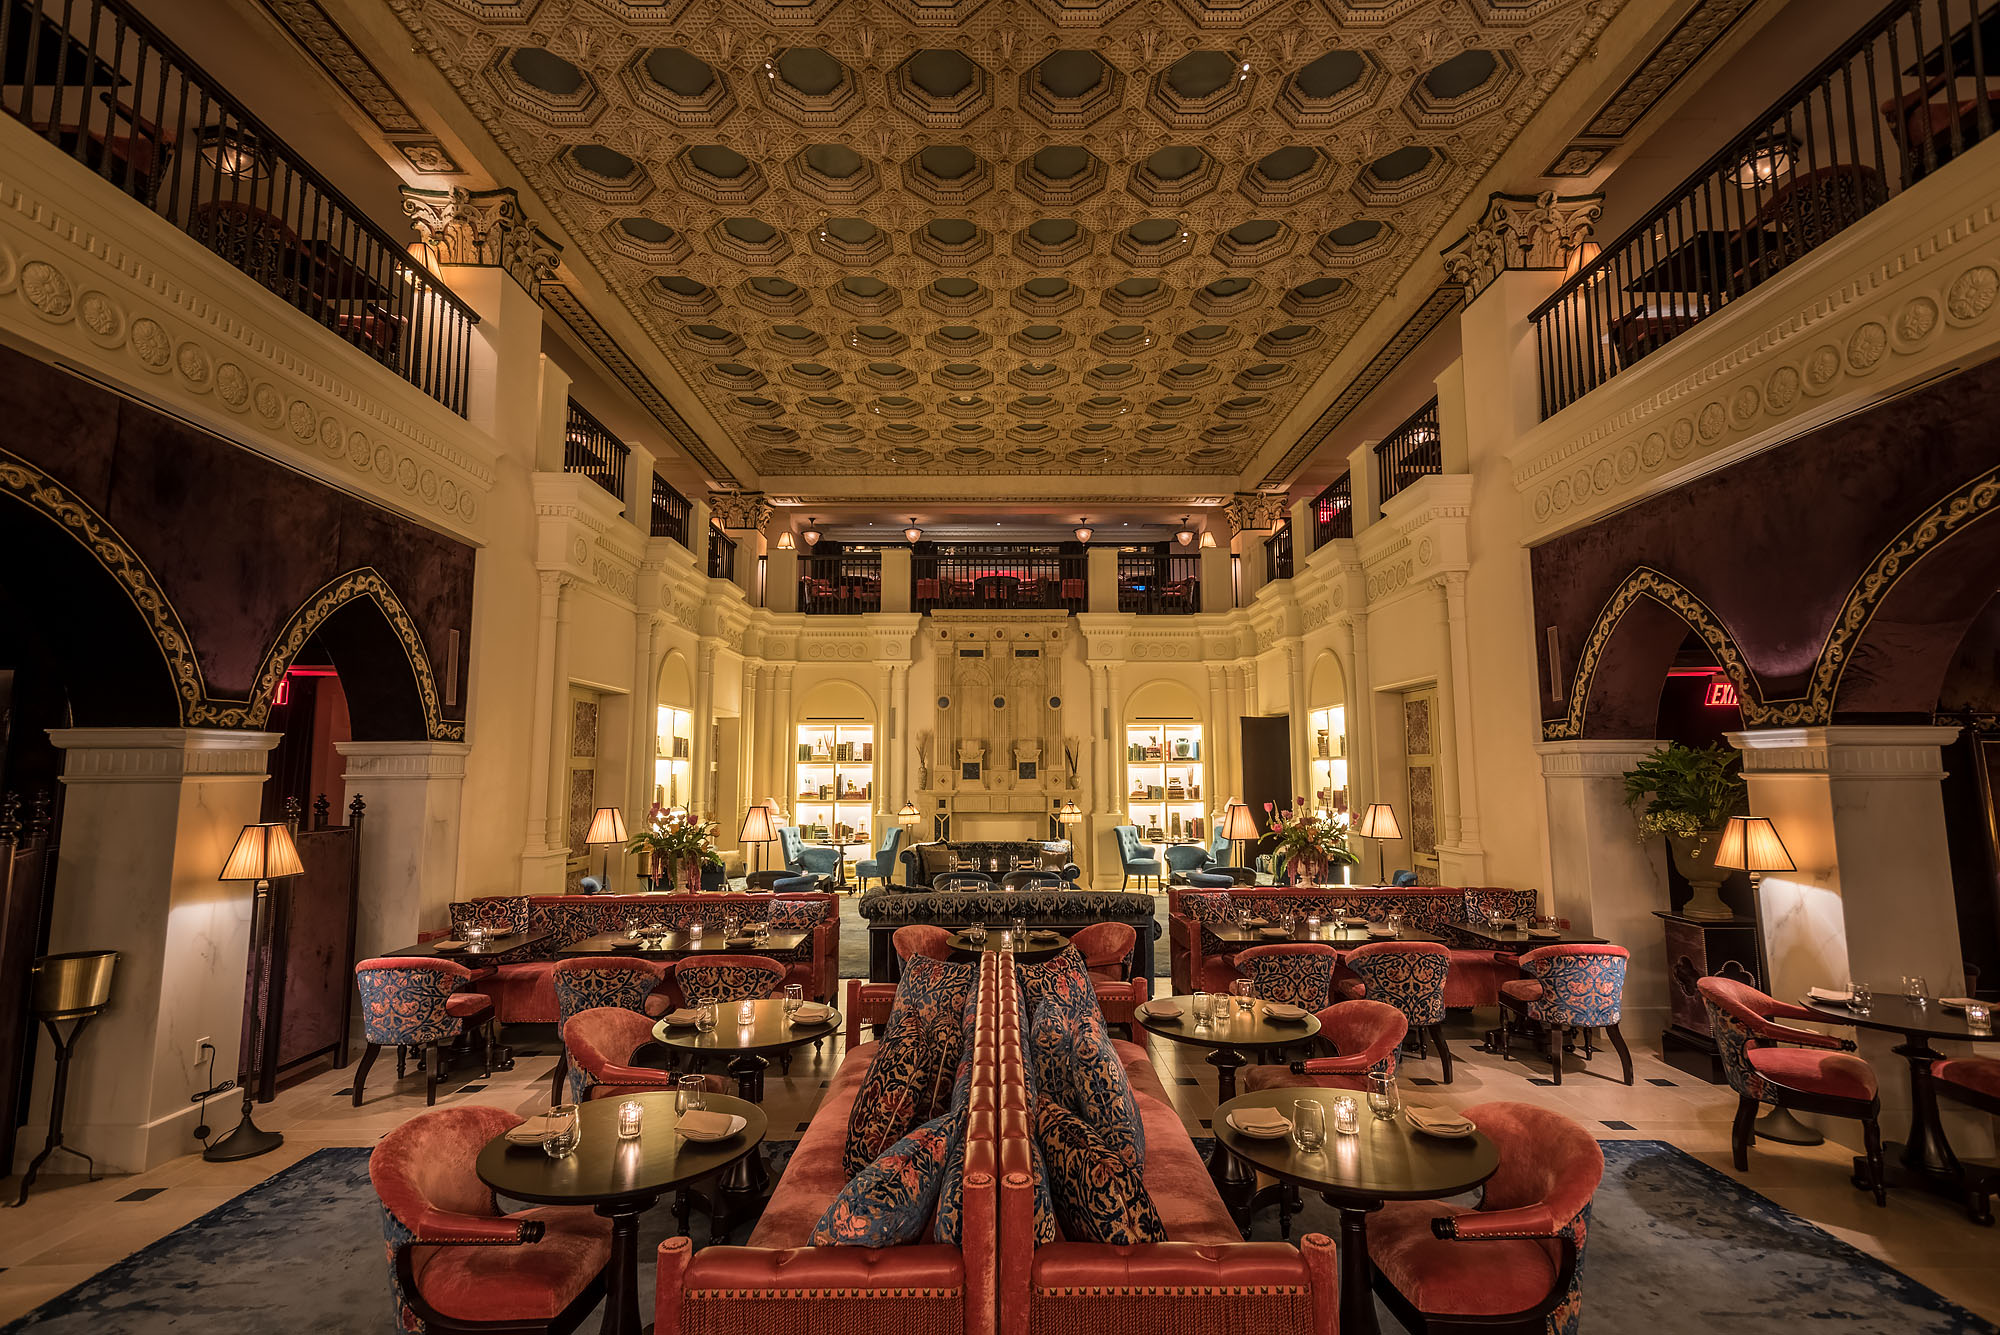 Nomad hotel opens in dtla inovus for Nomad hotel decor